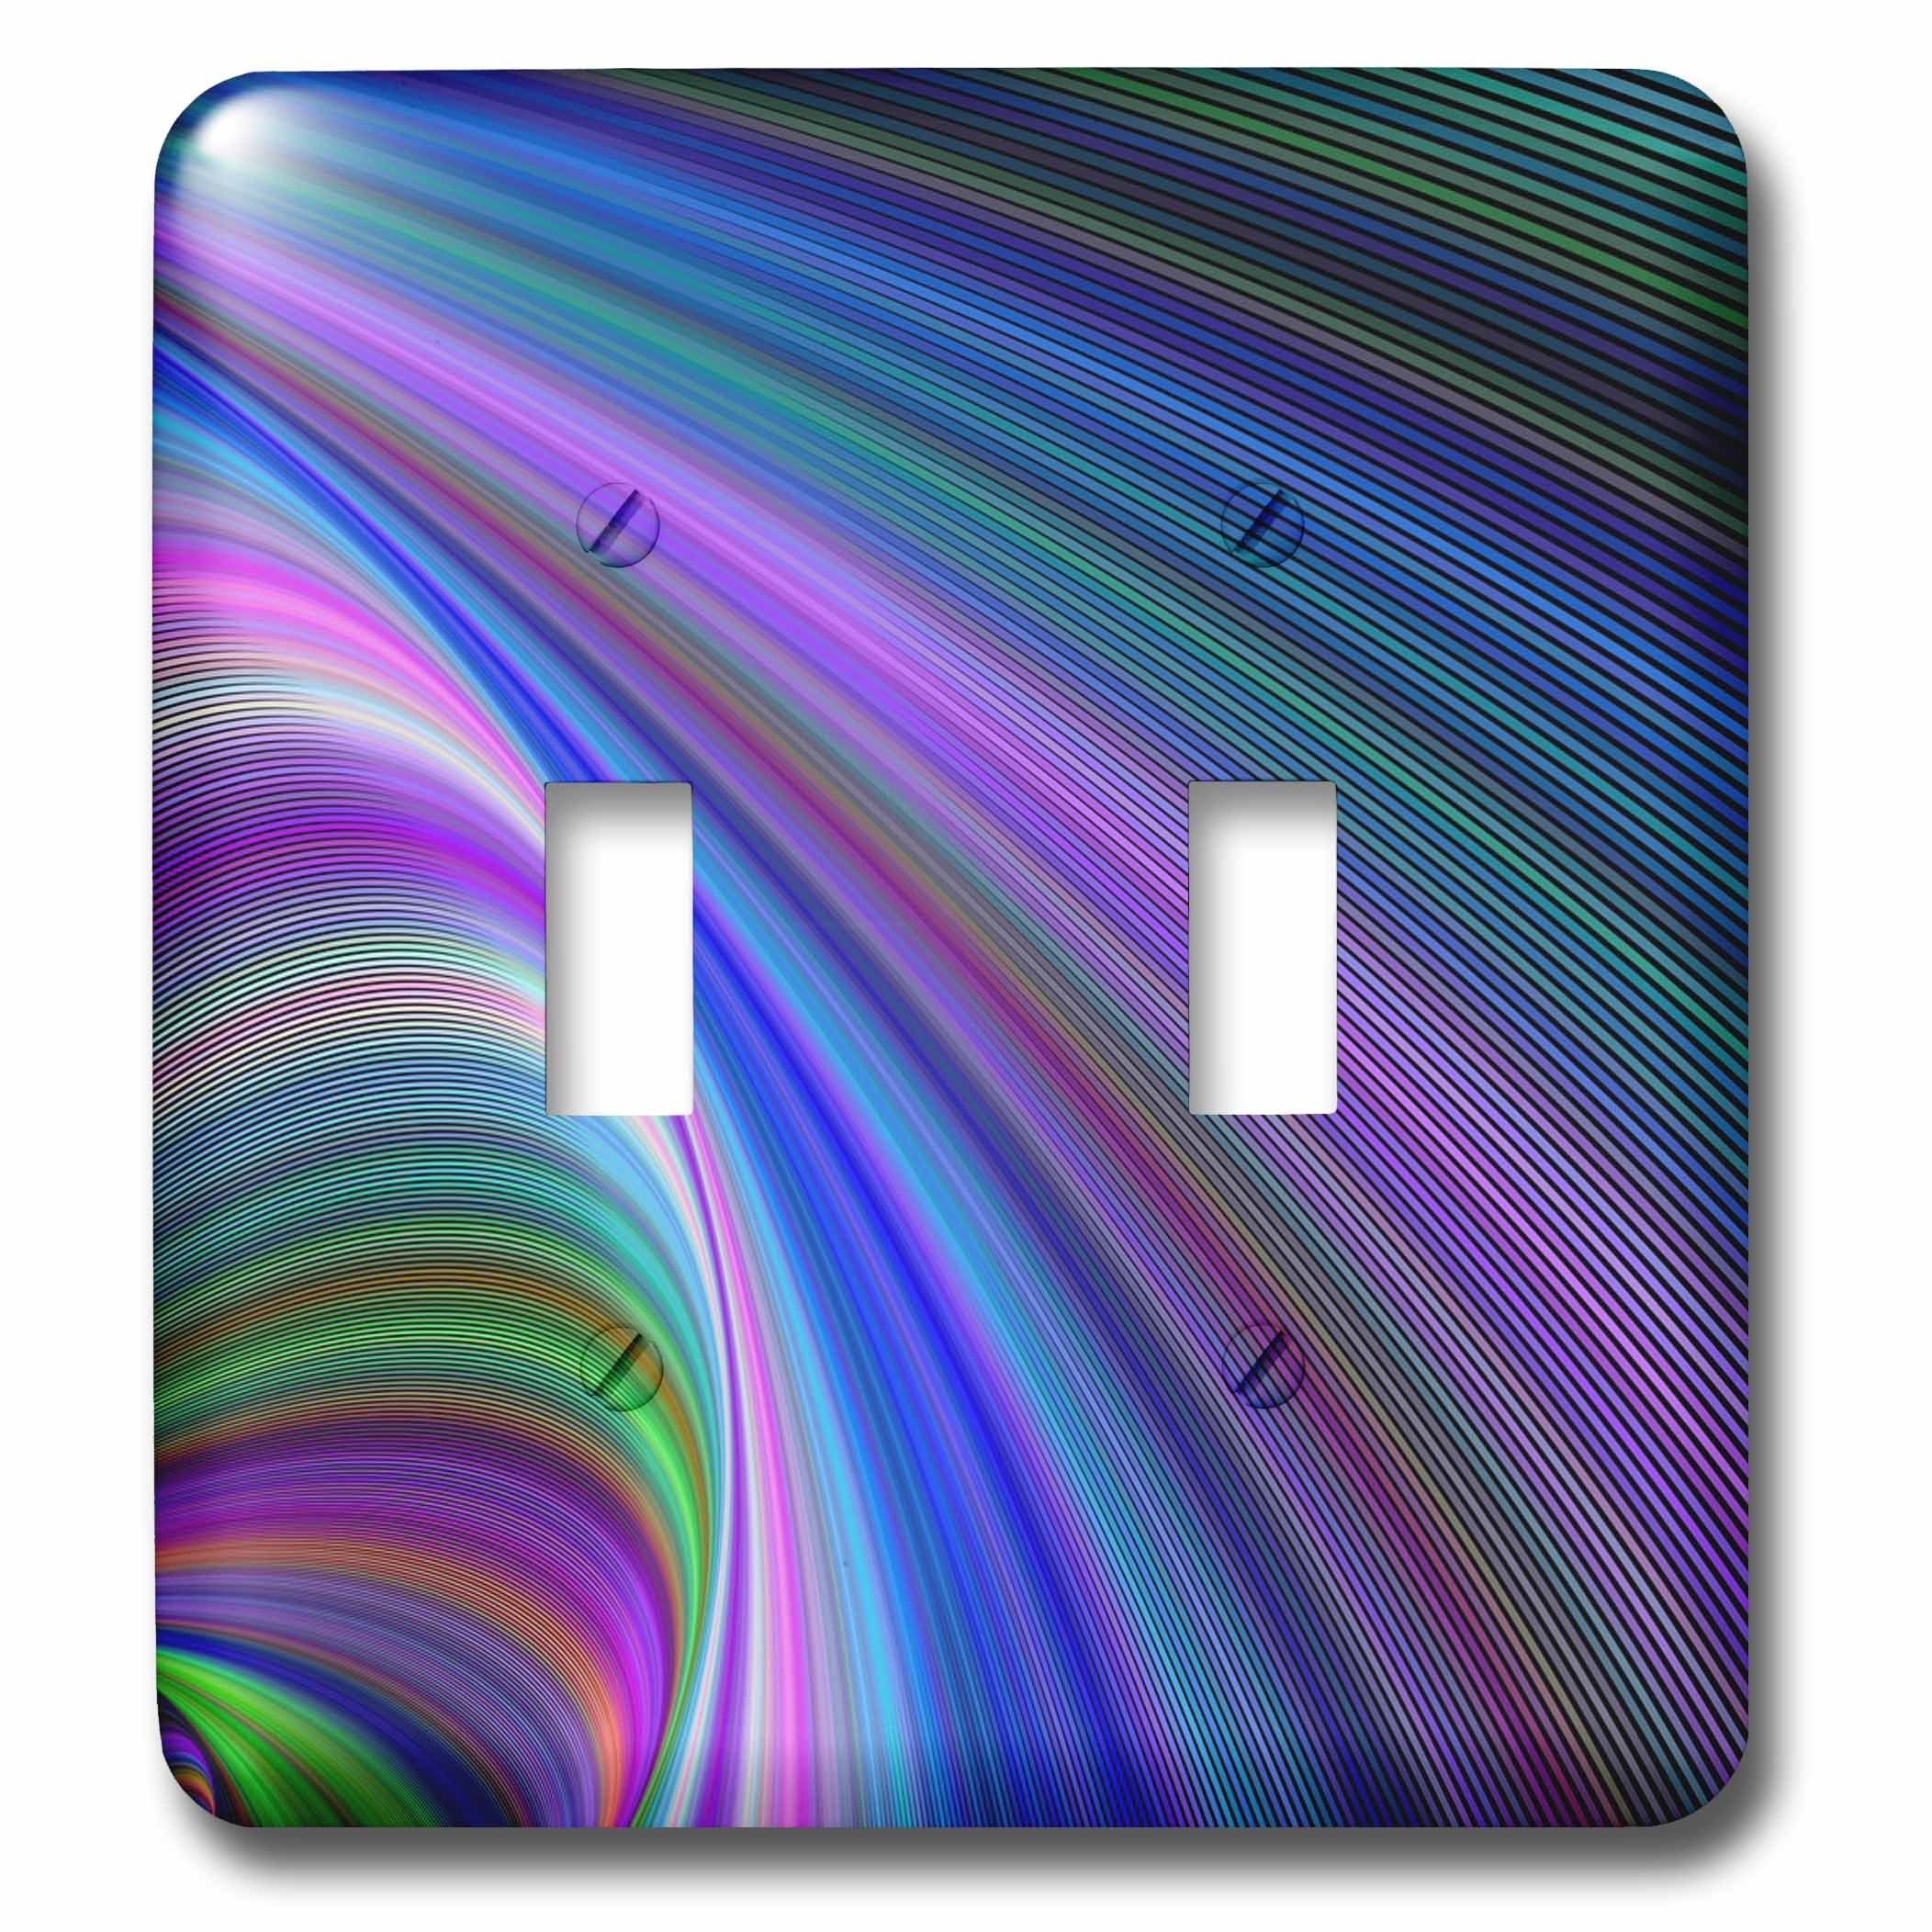 3dRose David Zydd - Colorful Abstract Designs - Sink in Colors - abstract curved graphic - Light Switch Covers - double toggle switch (lsp_286782_2) by 3dRose